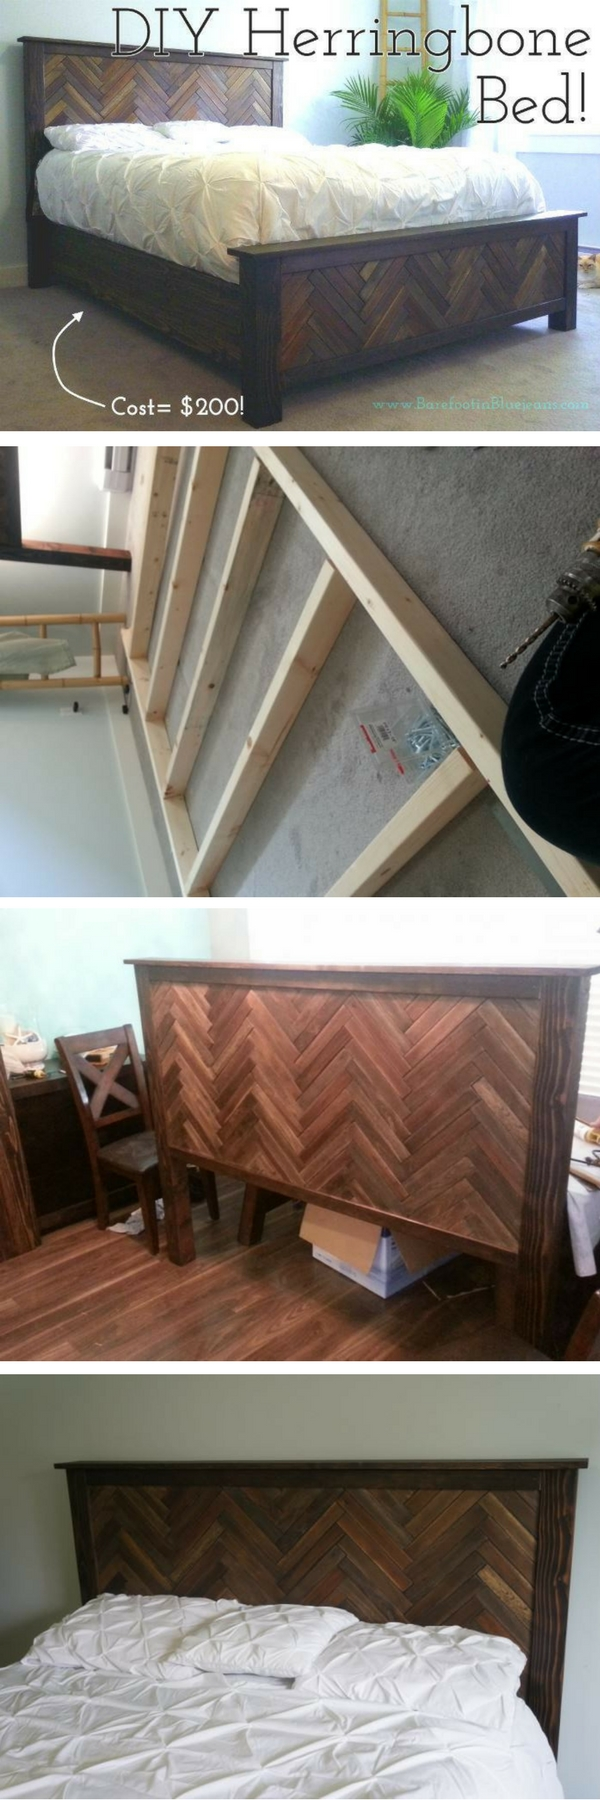 Check out the tutorial on how to build a DIY herringbone bed @istandarddesign